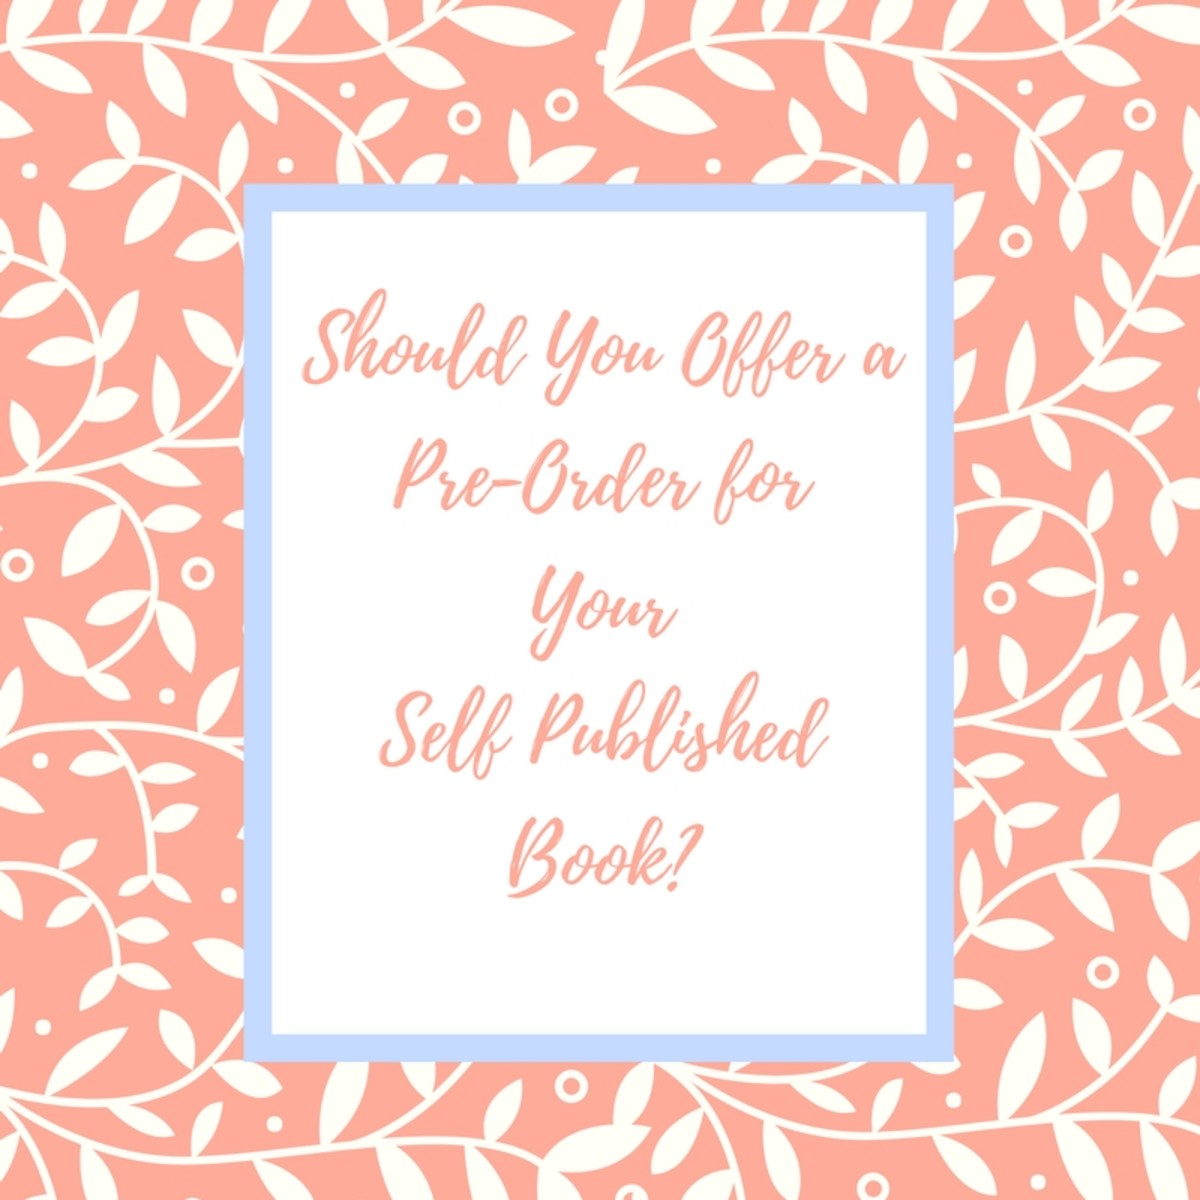 Book Marketing Tips: Should You Offer a Pre-Order for Your Self-Published Book?